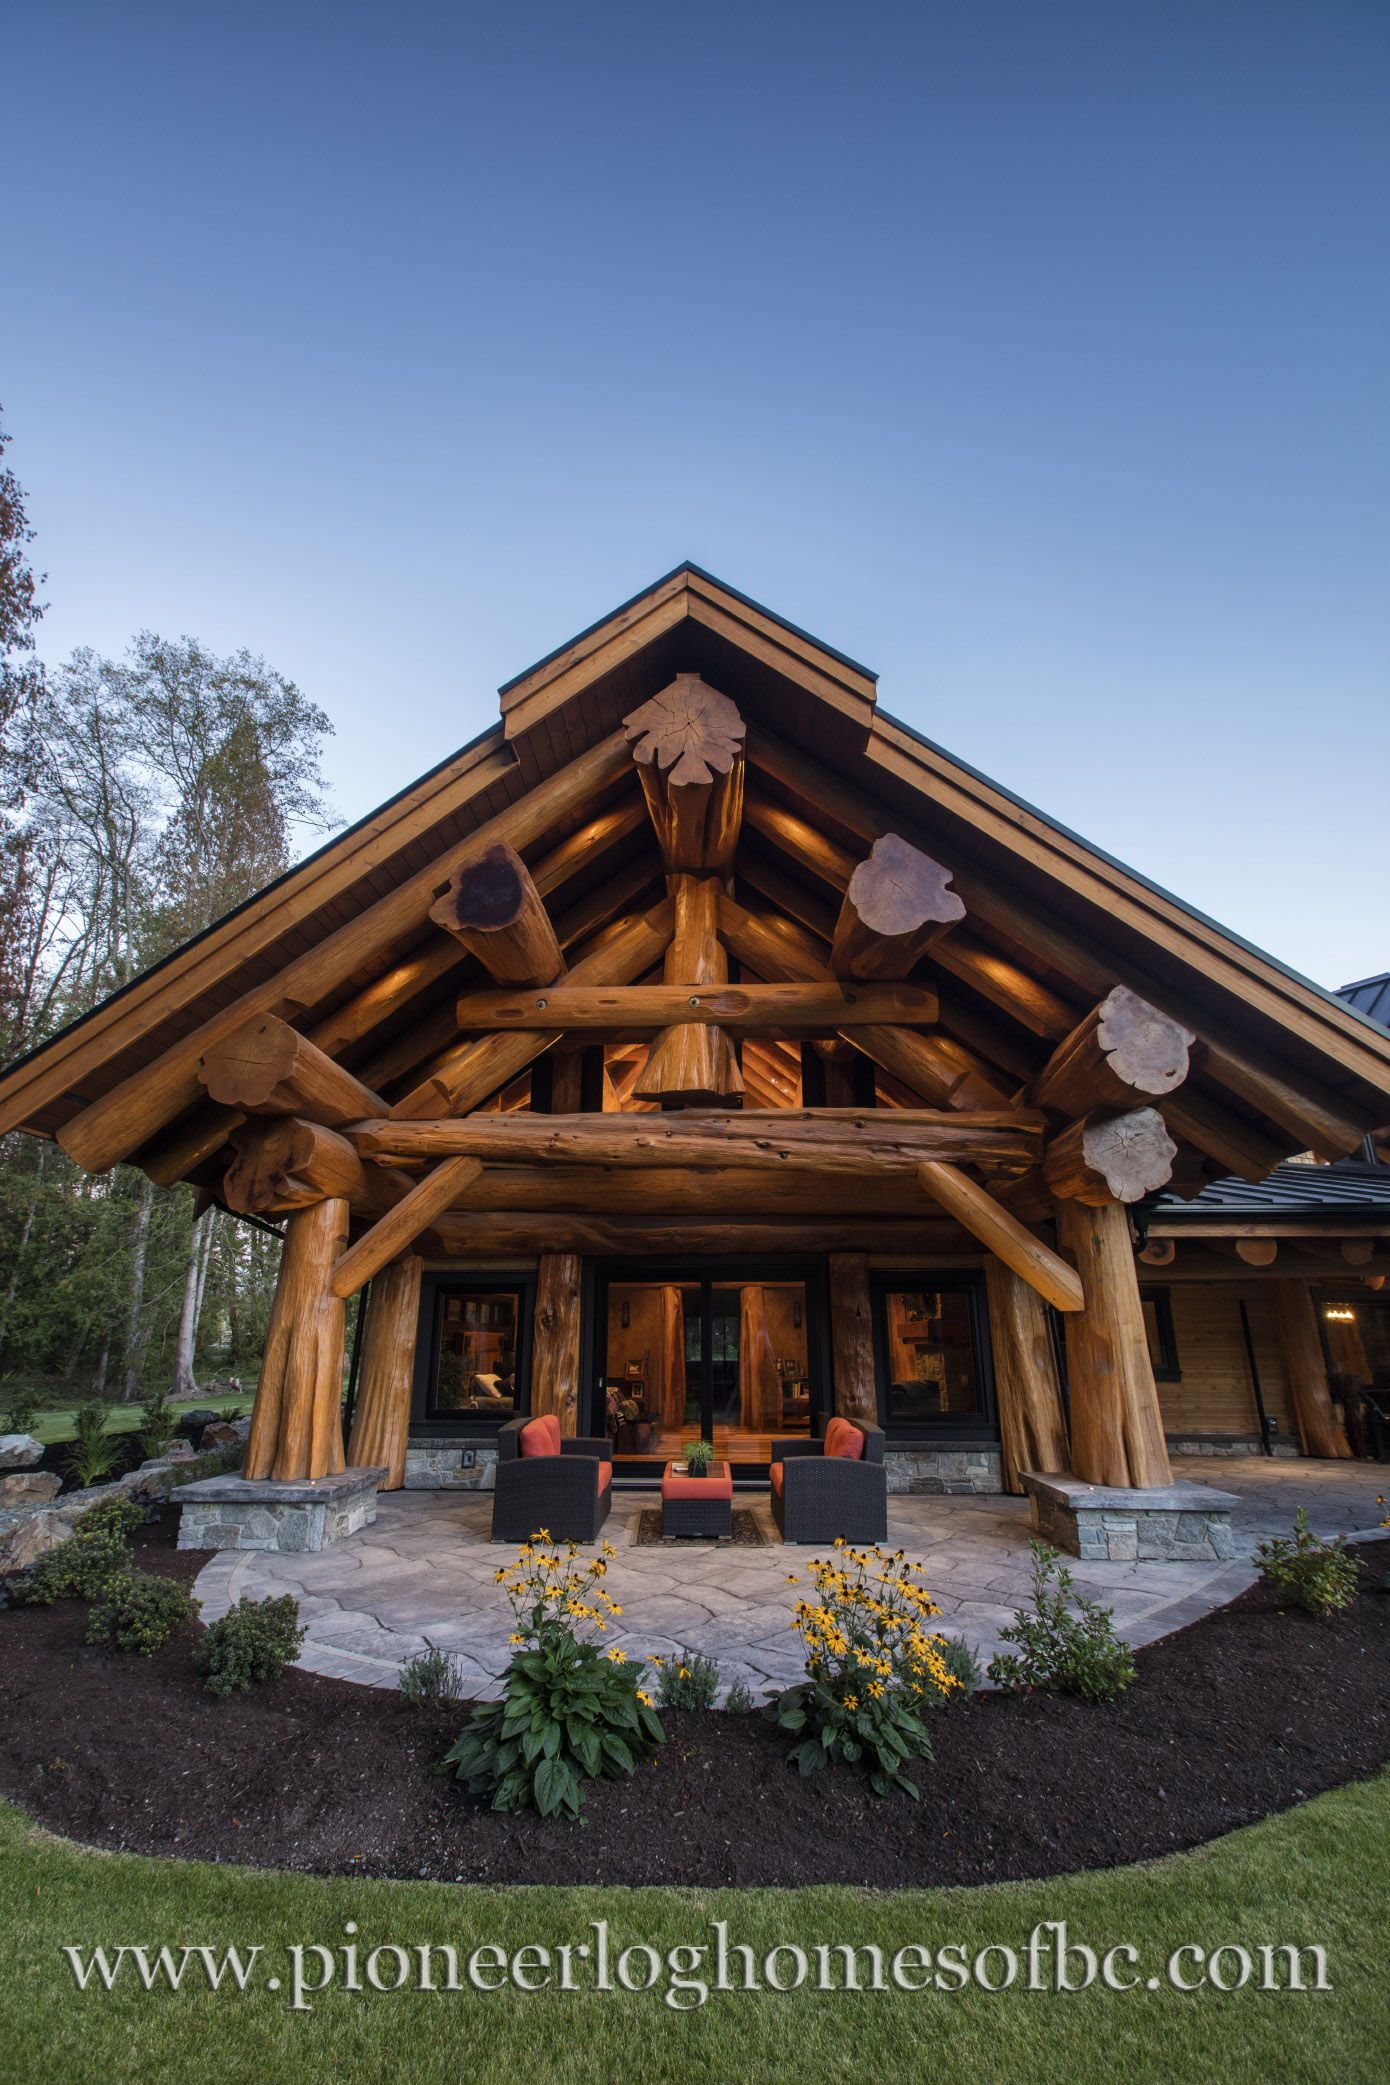 The Forestville Www Pioneerloghomesofbc Com Log Homes House In The Woods Log Home Decorating